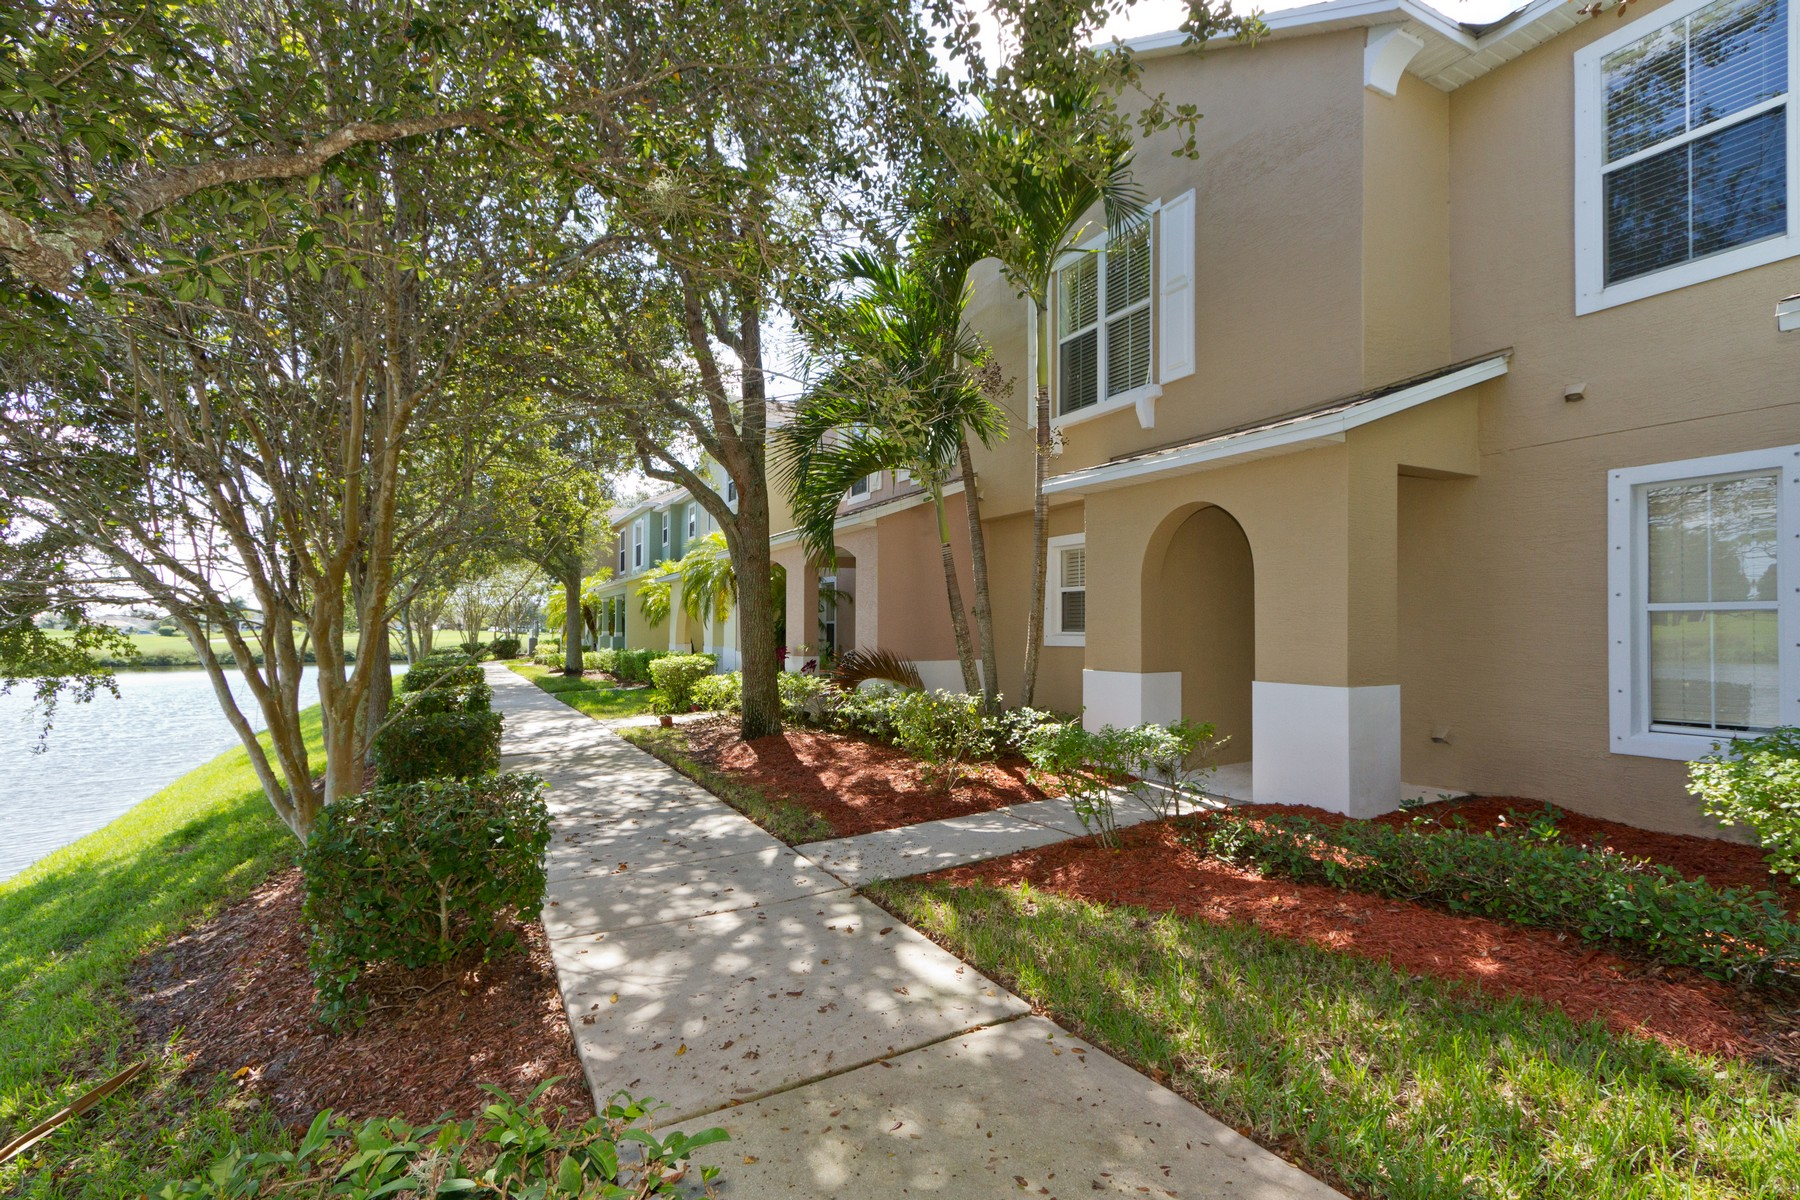 townhouses 용 매매 에 Newly Refreshed Lakefront Two Story Townhome 1582 Birdie Drive Vero Beach, 플로리다 32966 미국